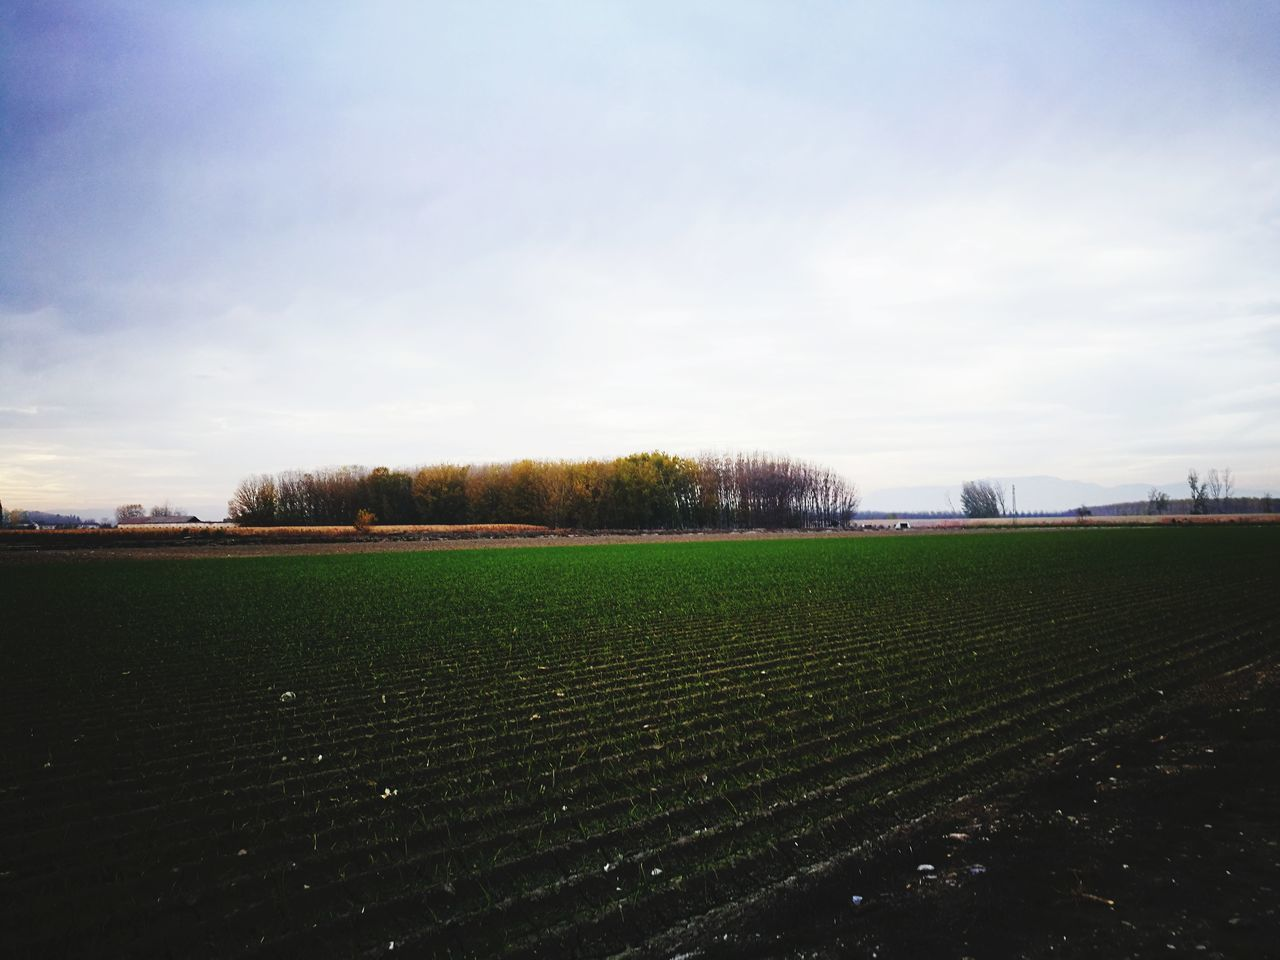 sky, field, beauty in nature, nature, tranquility, no people, tranquil scene, scenics, agriculture, cloud - sky, outdoors, landscape, day, tree